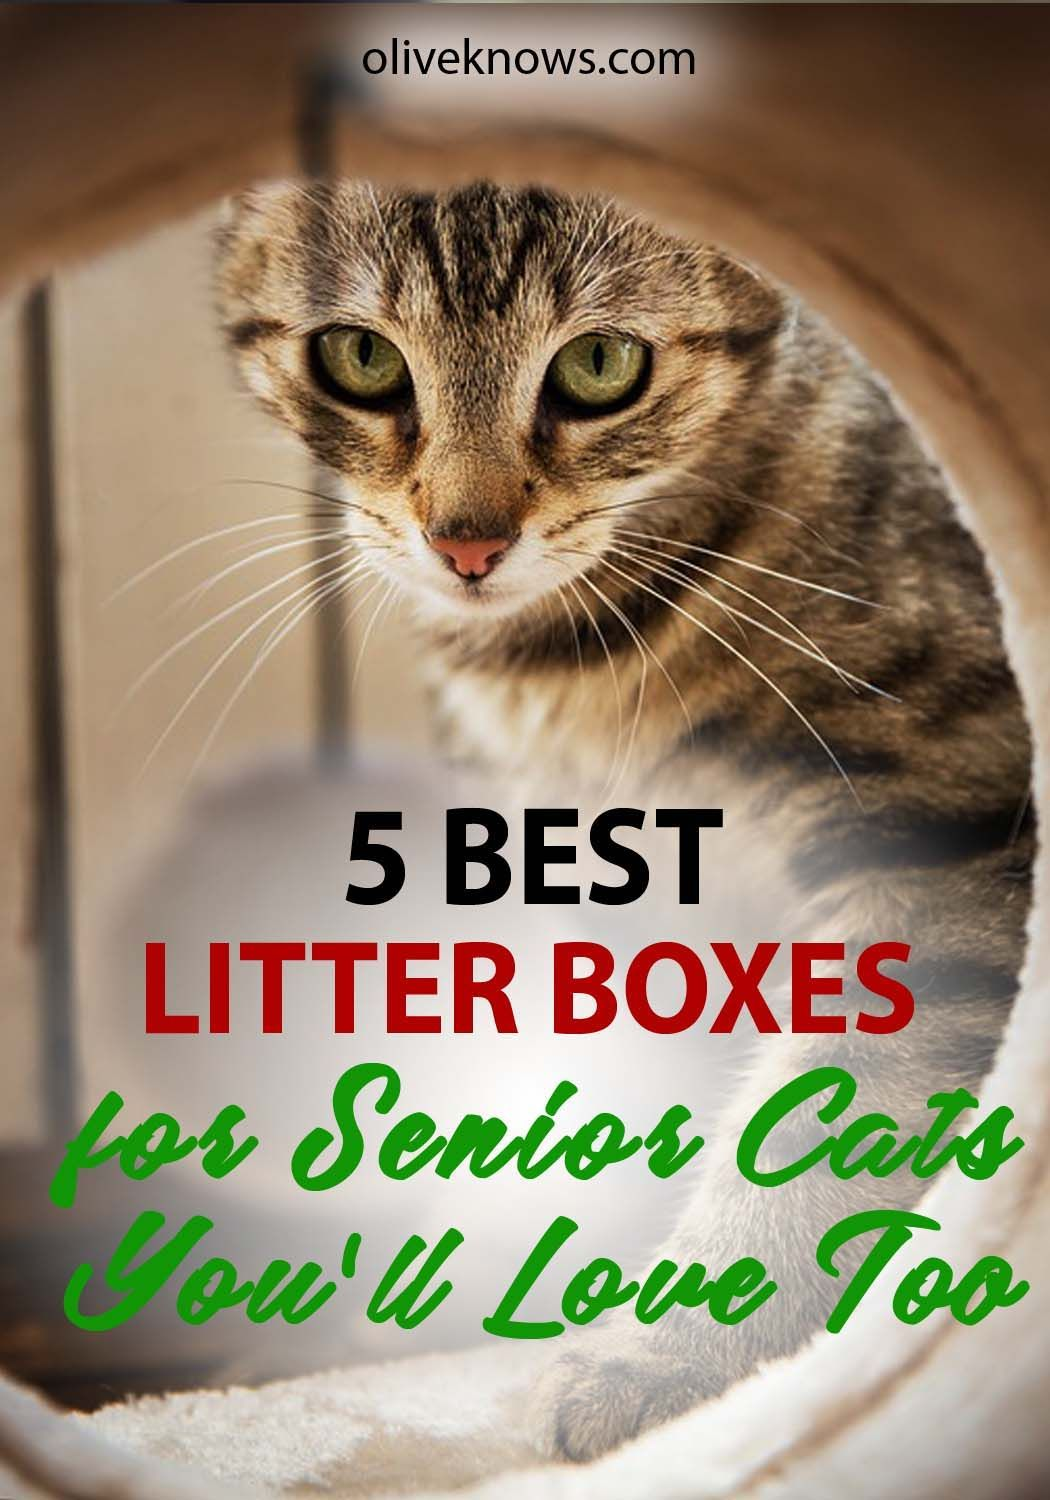 5 Best Litter Boxes For Senior Cats 2020 Guide Oliveknows Best Litter Box Cat Training Senior Cat